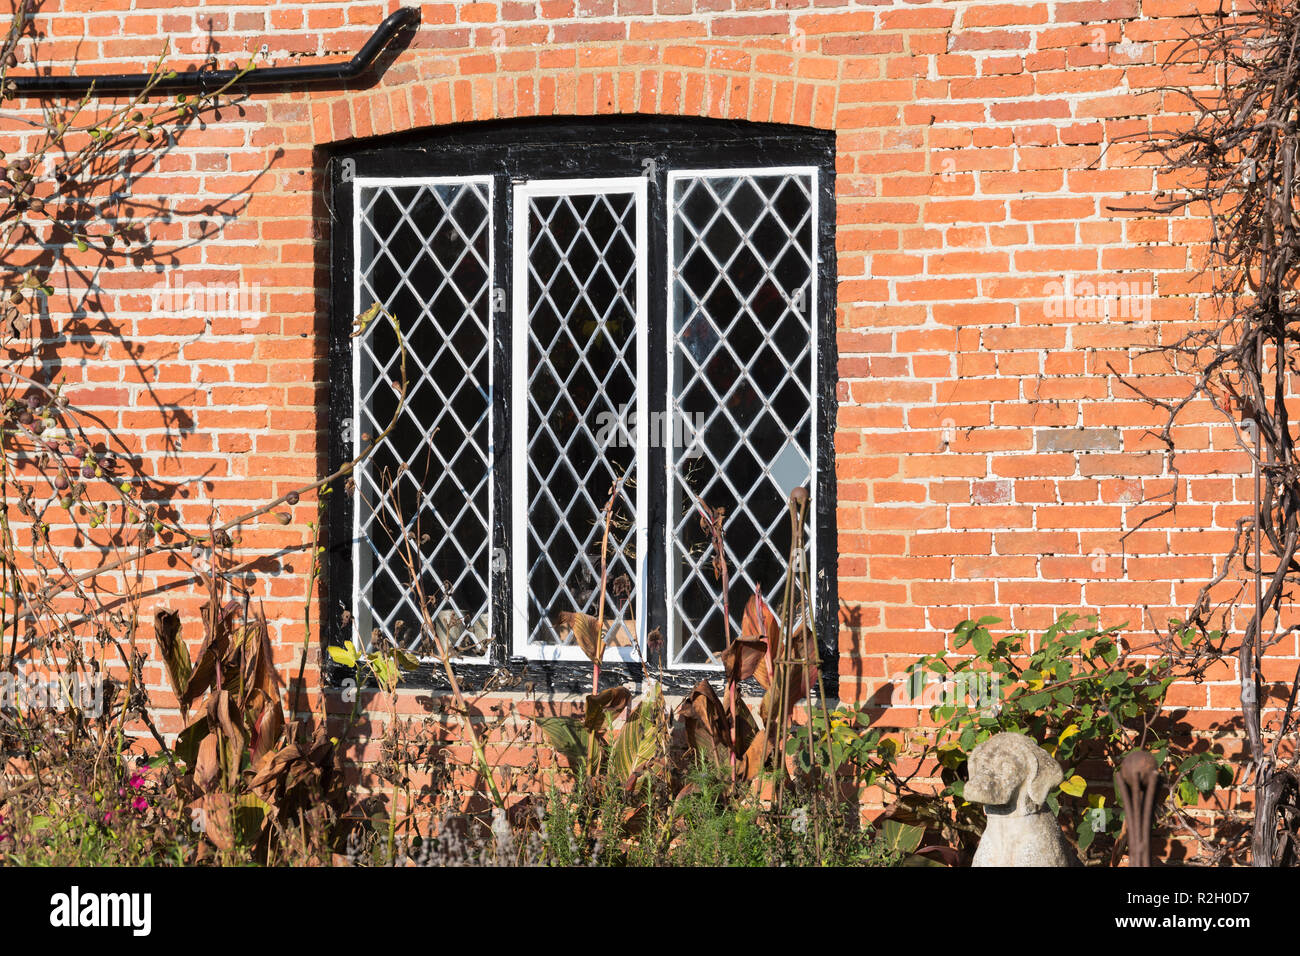 Diamond shaped leaded framed glass window on a wall made of red brick, in the UK. Lead diamond frames windows. - Stock Image